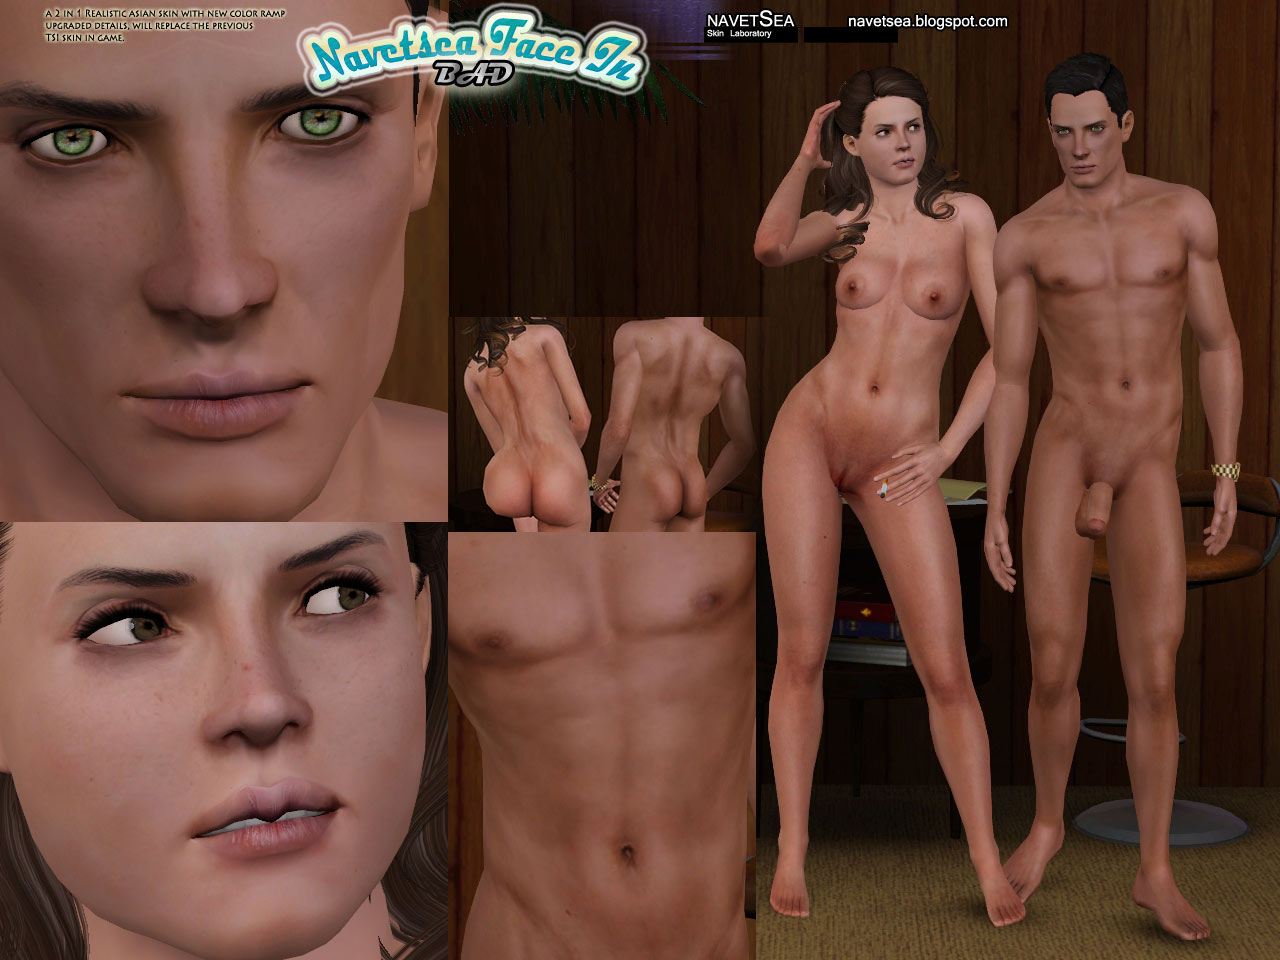 The sims 4 nudes hairy erotic scenes